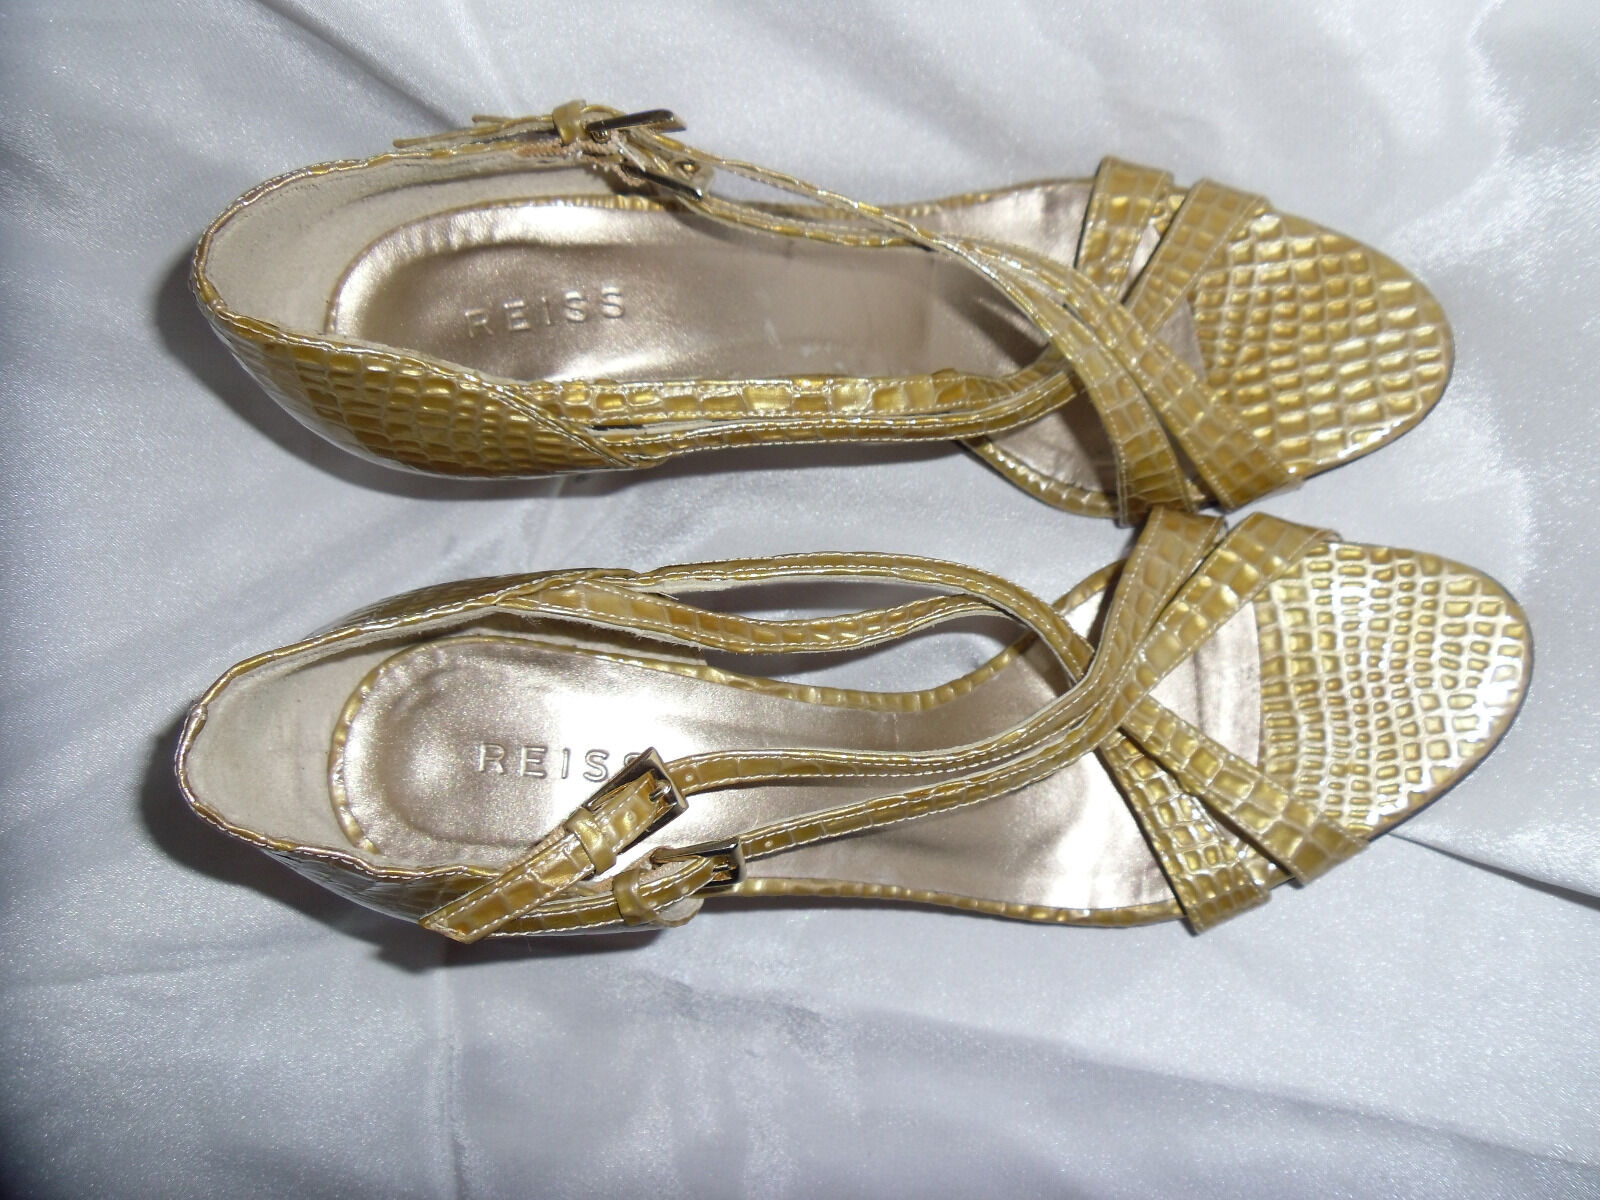 REISS REISS REISS WOMEN'S BEIGE PATENT LEATHER STRAP Schuhe SIZE UK 6 EU 39 VGC a01cb8